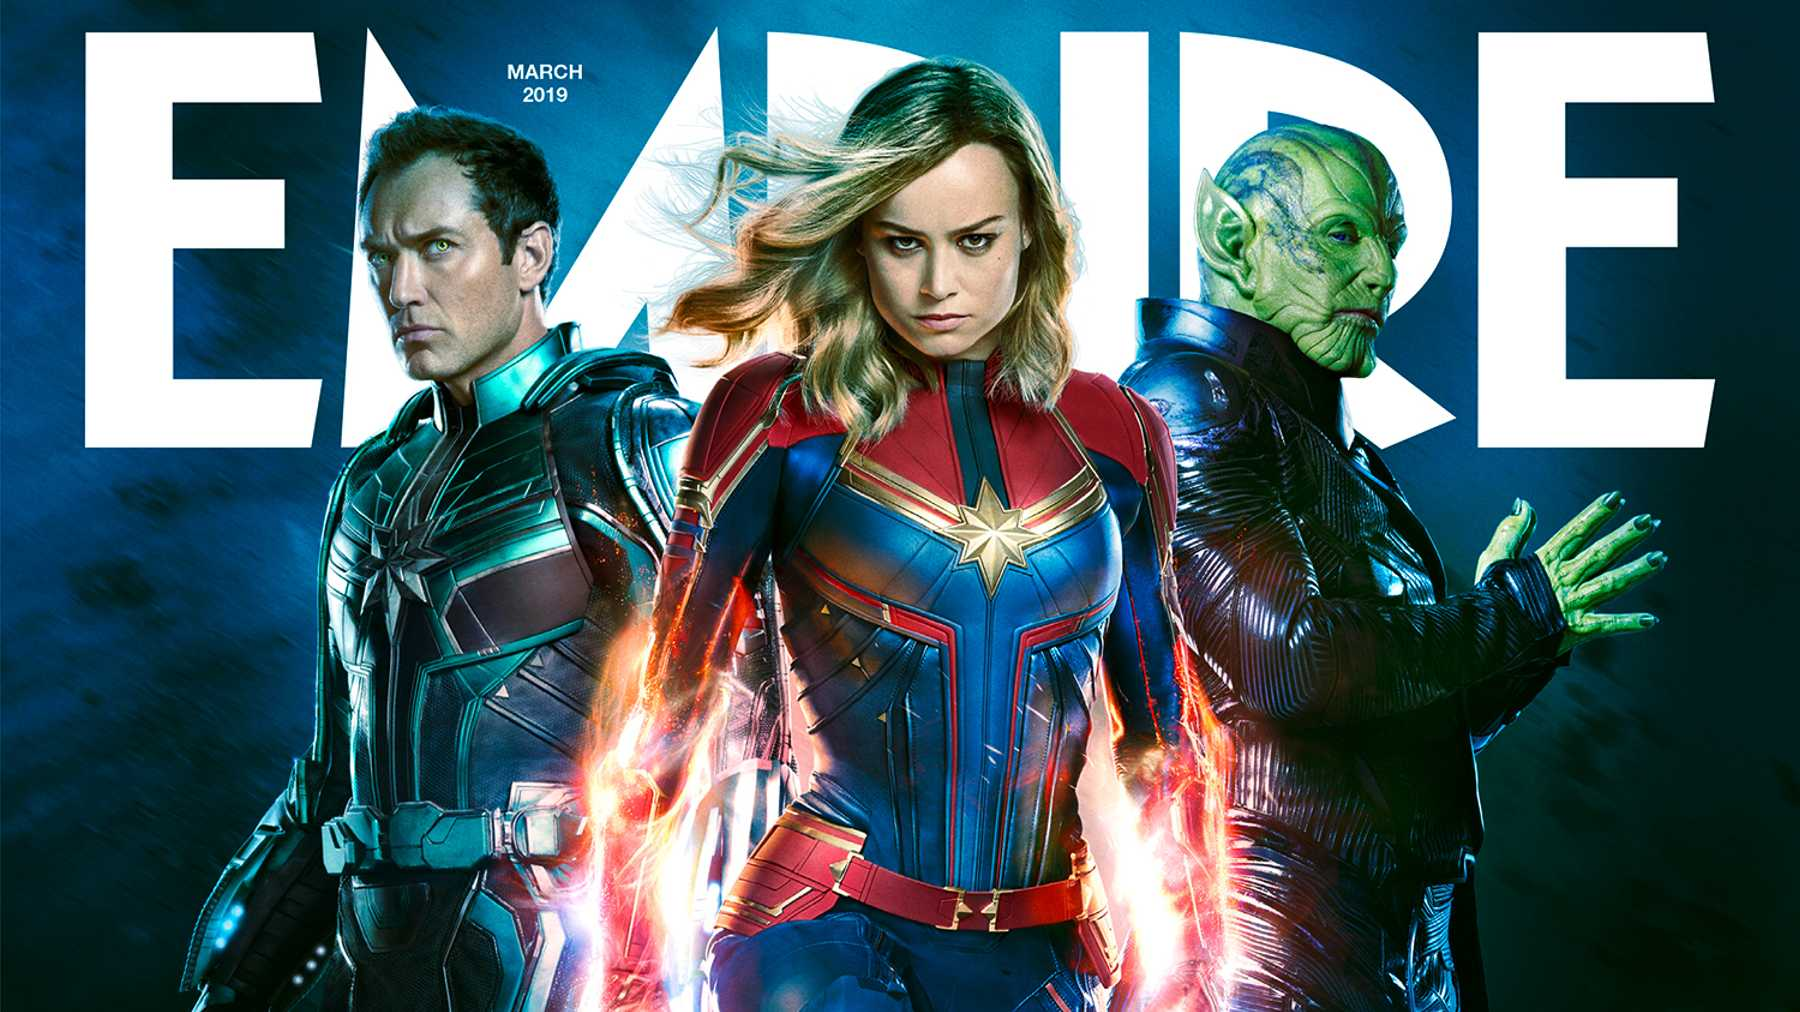 empire's captain marvel newsstand cover revealed | movies